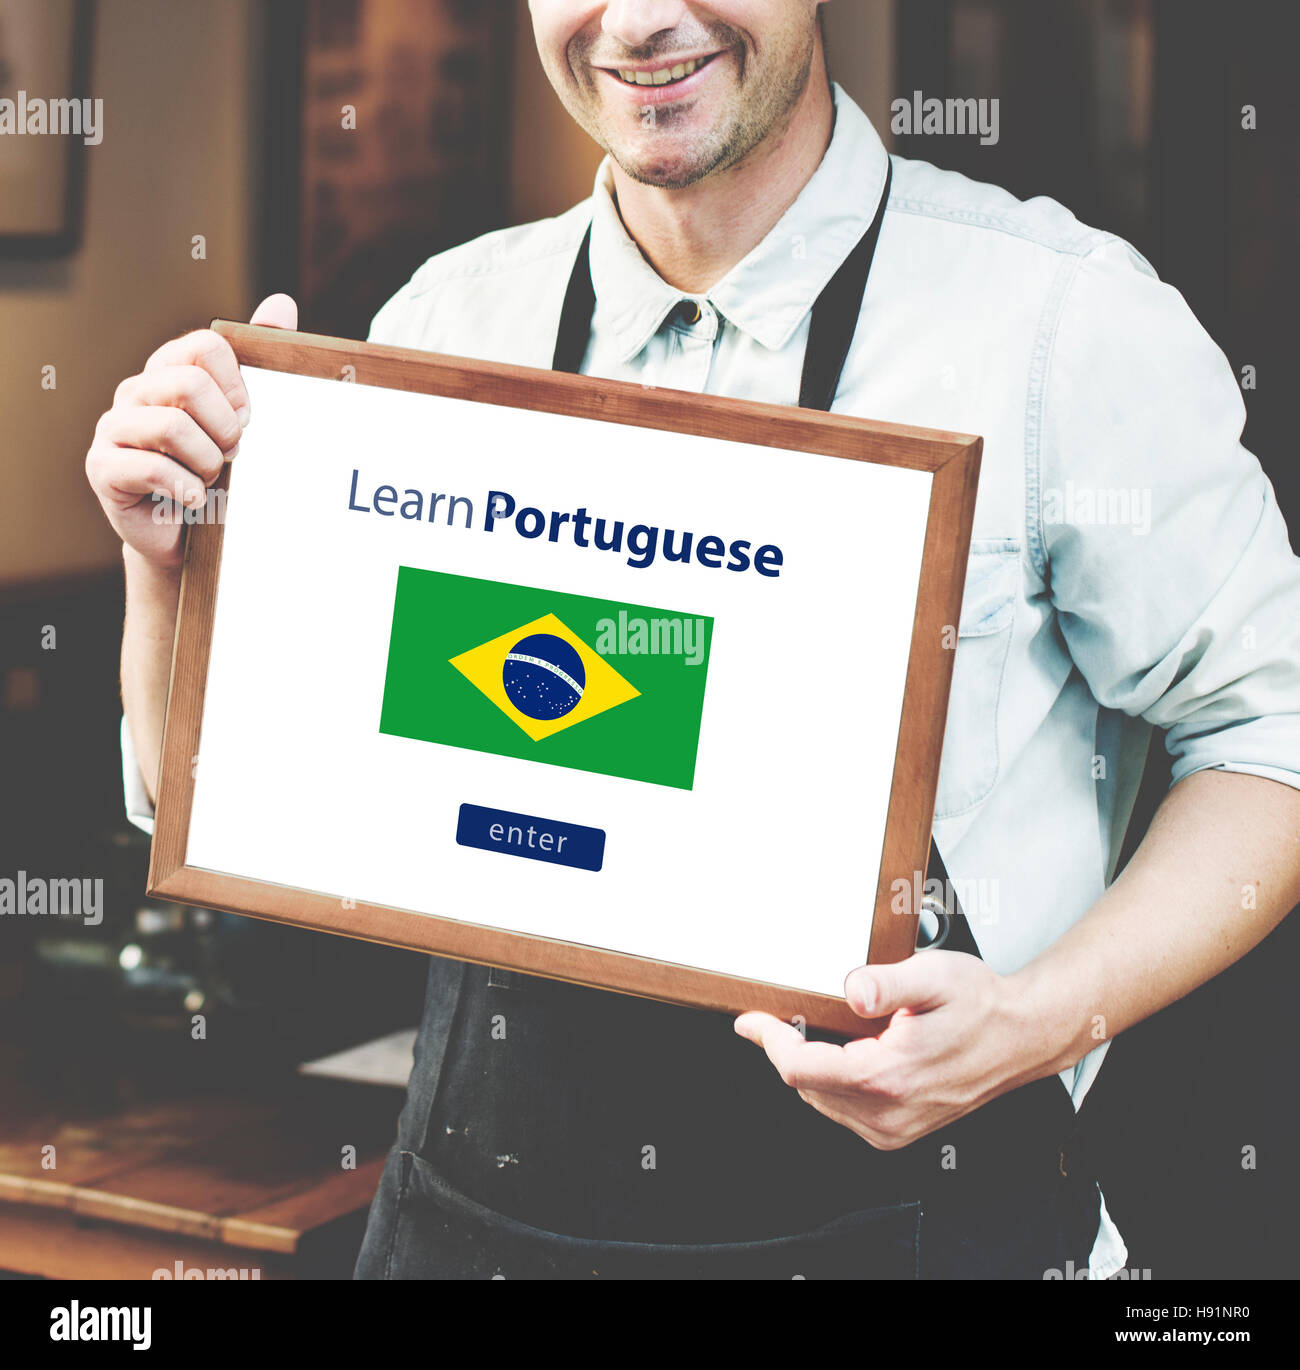 Learn Portuguese Language Online Education Concept Stock Photo